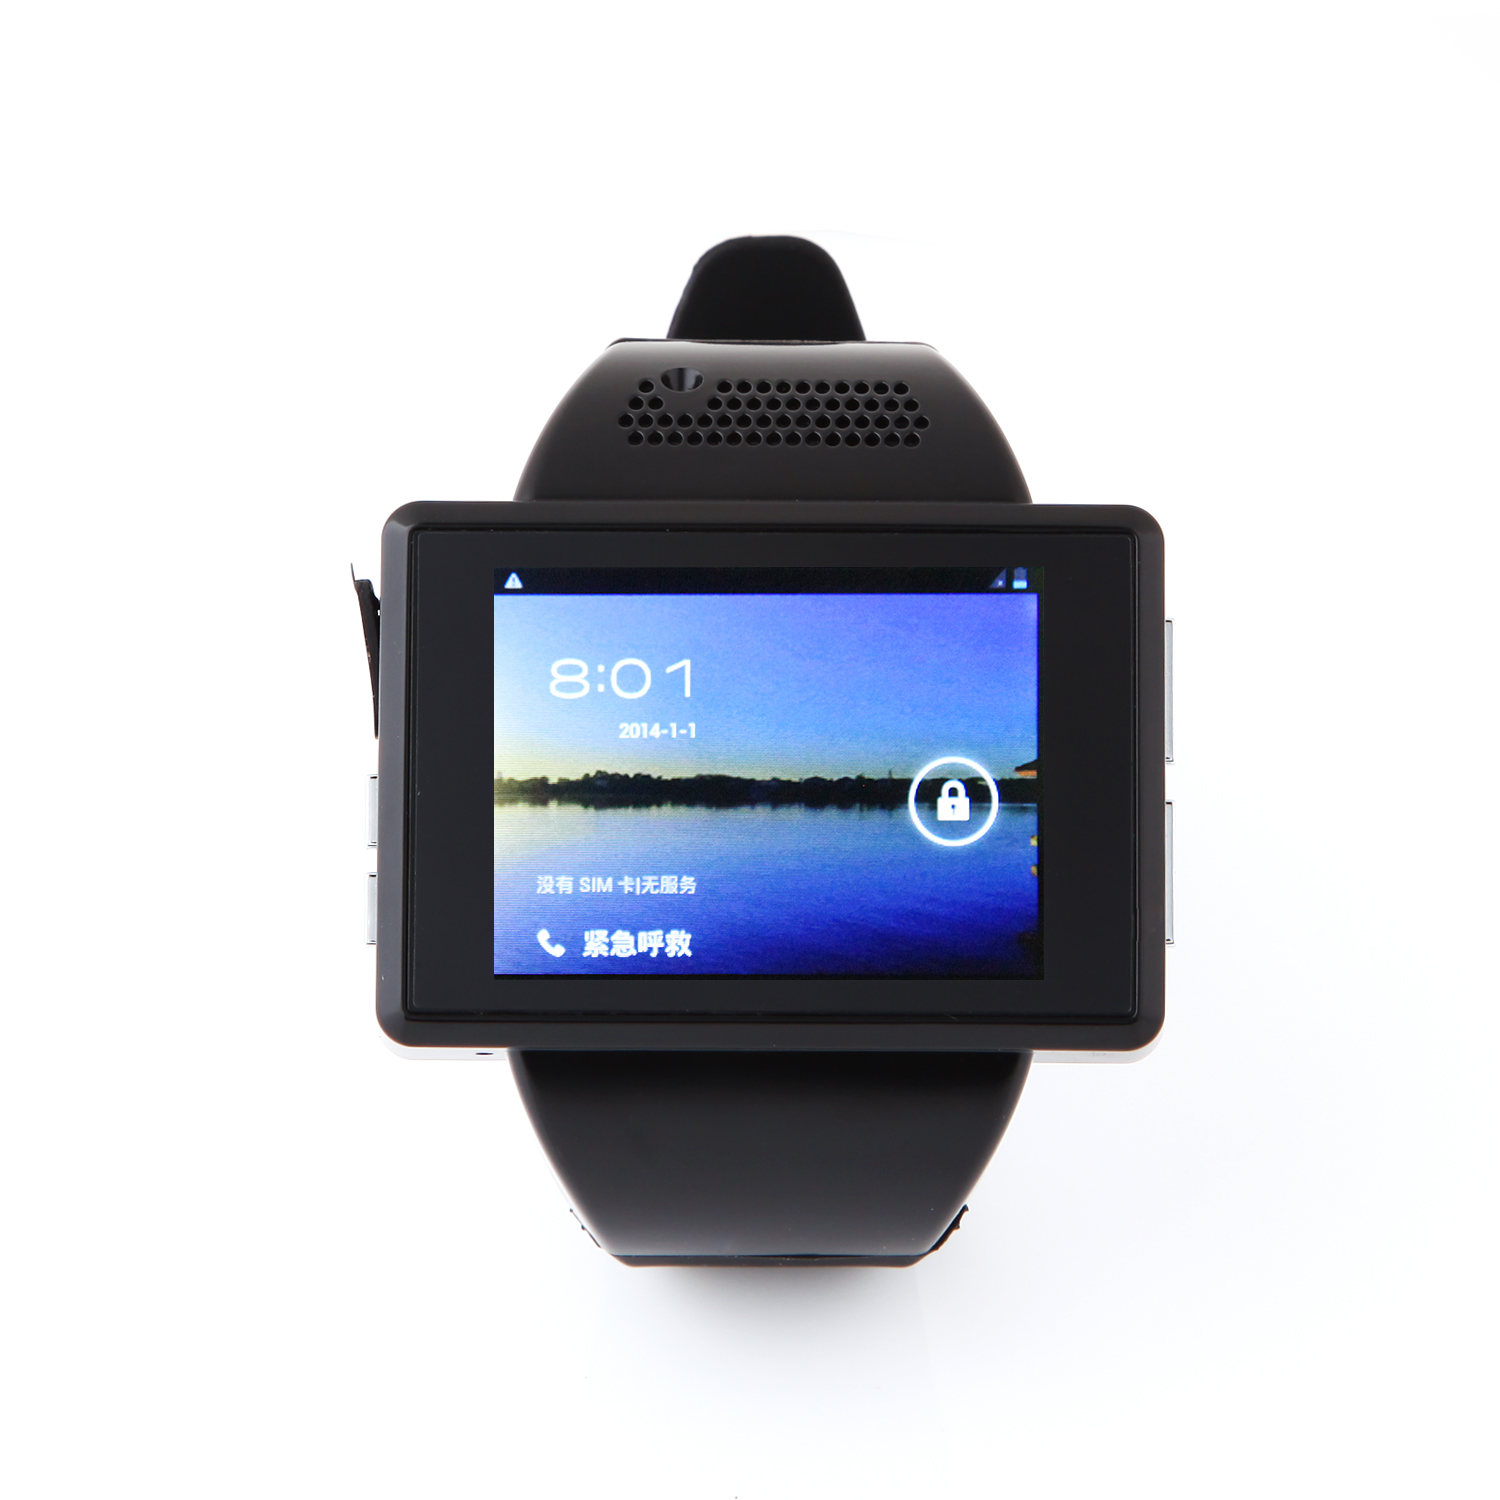 An1 Smart Watch Phone 2.0 Inch MTK6515 Android 4.1 Camera GPS WiFi - Black